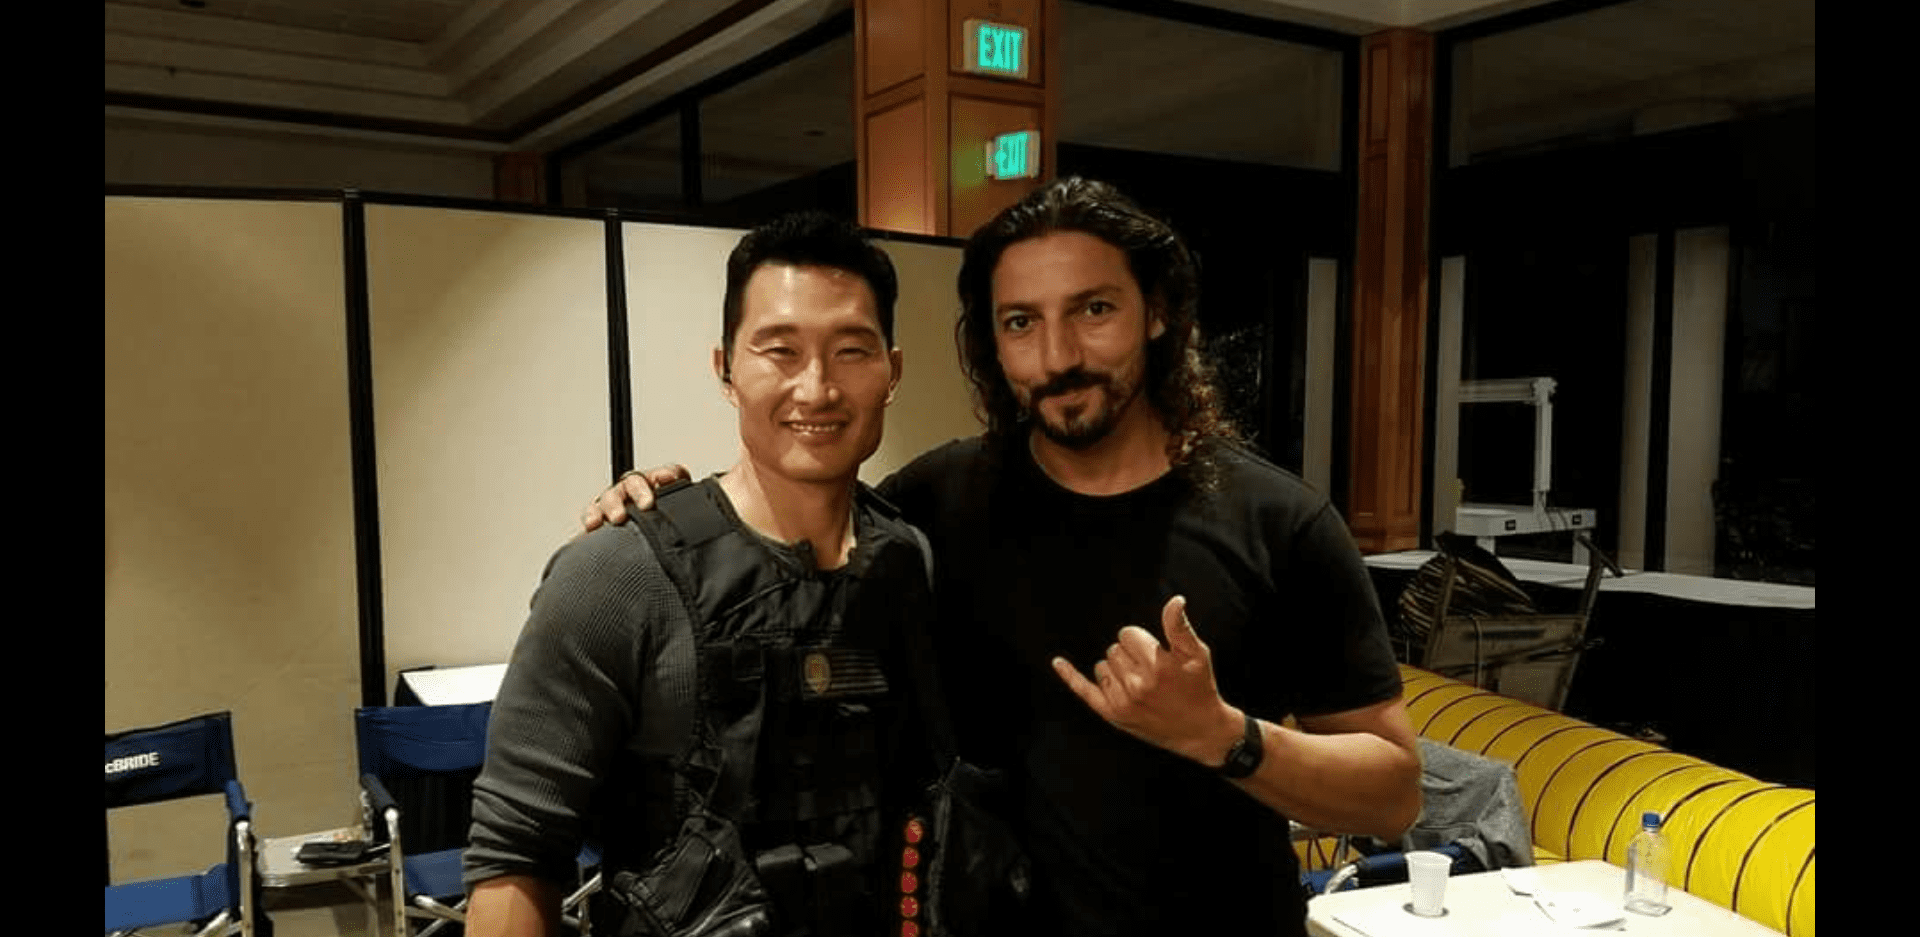 """Daniel Dae Kim and Solimane Lamouri on the set of """"Hawaii Five-O"""" onMarch 15, 2017 